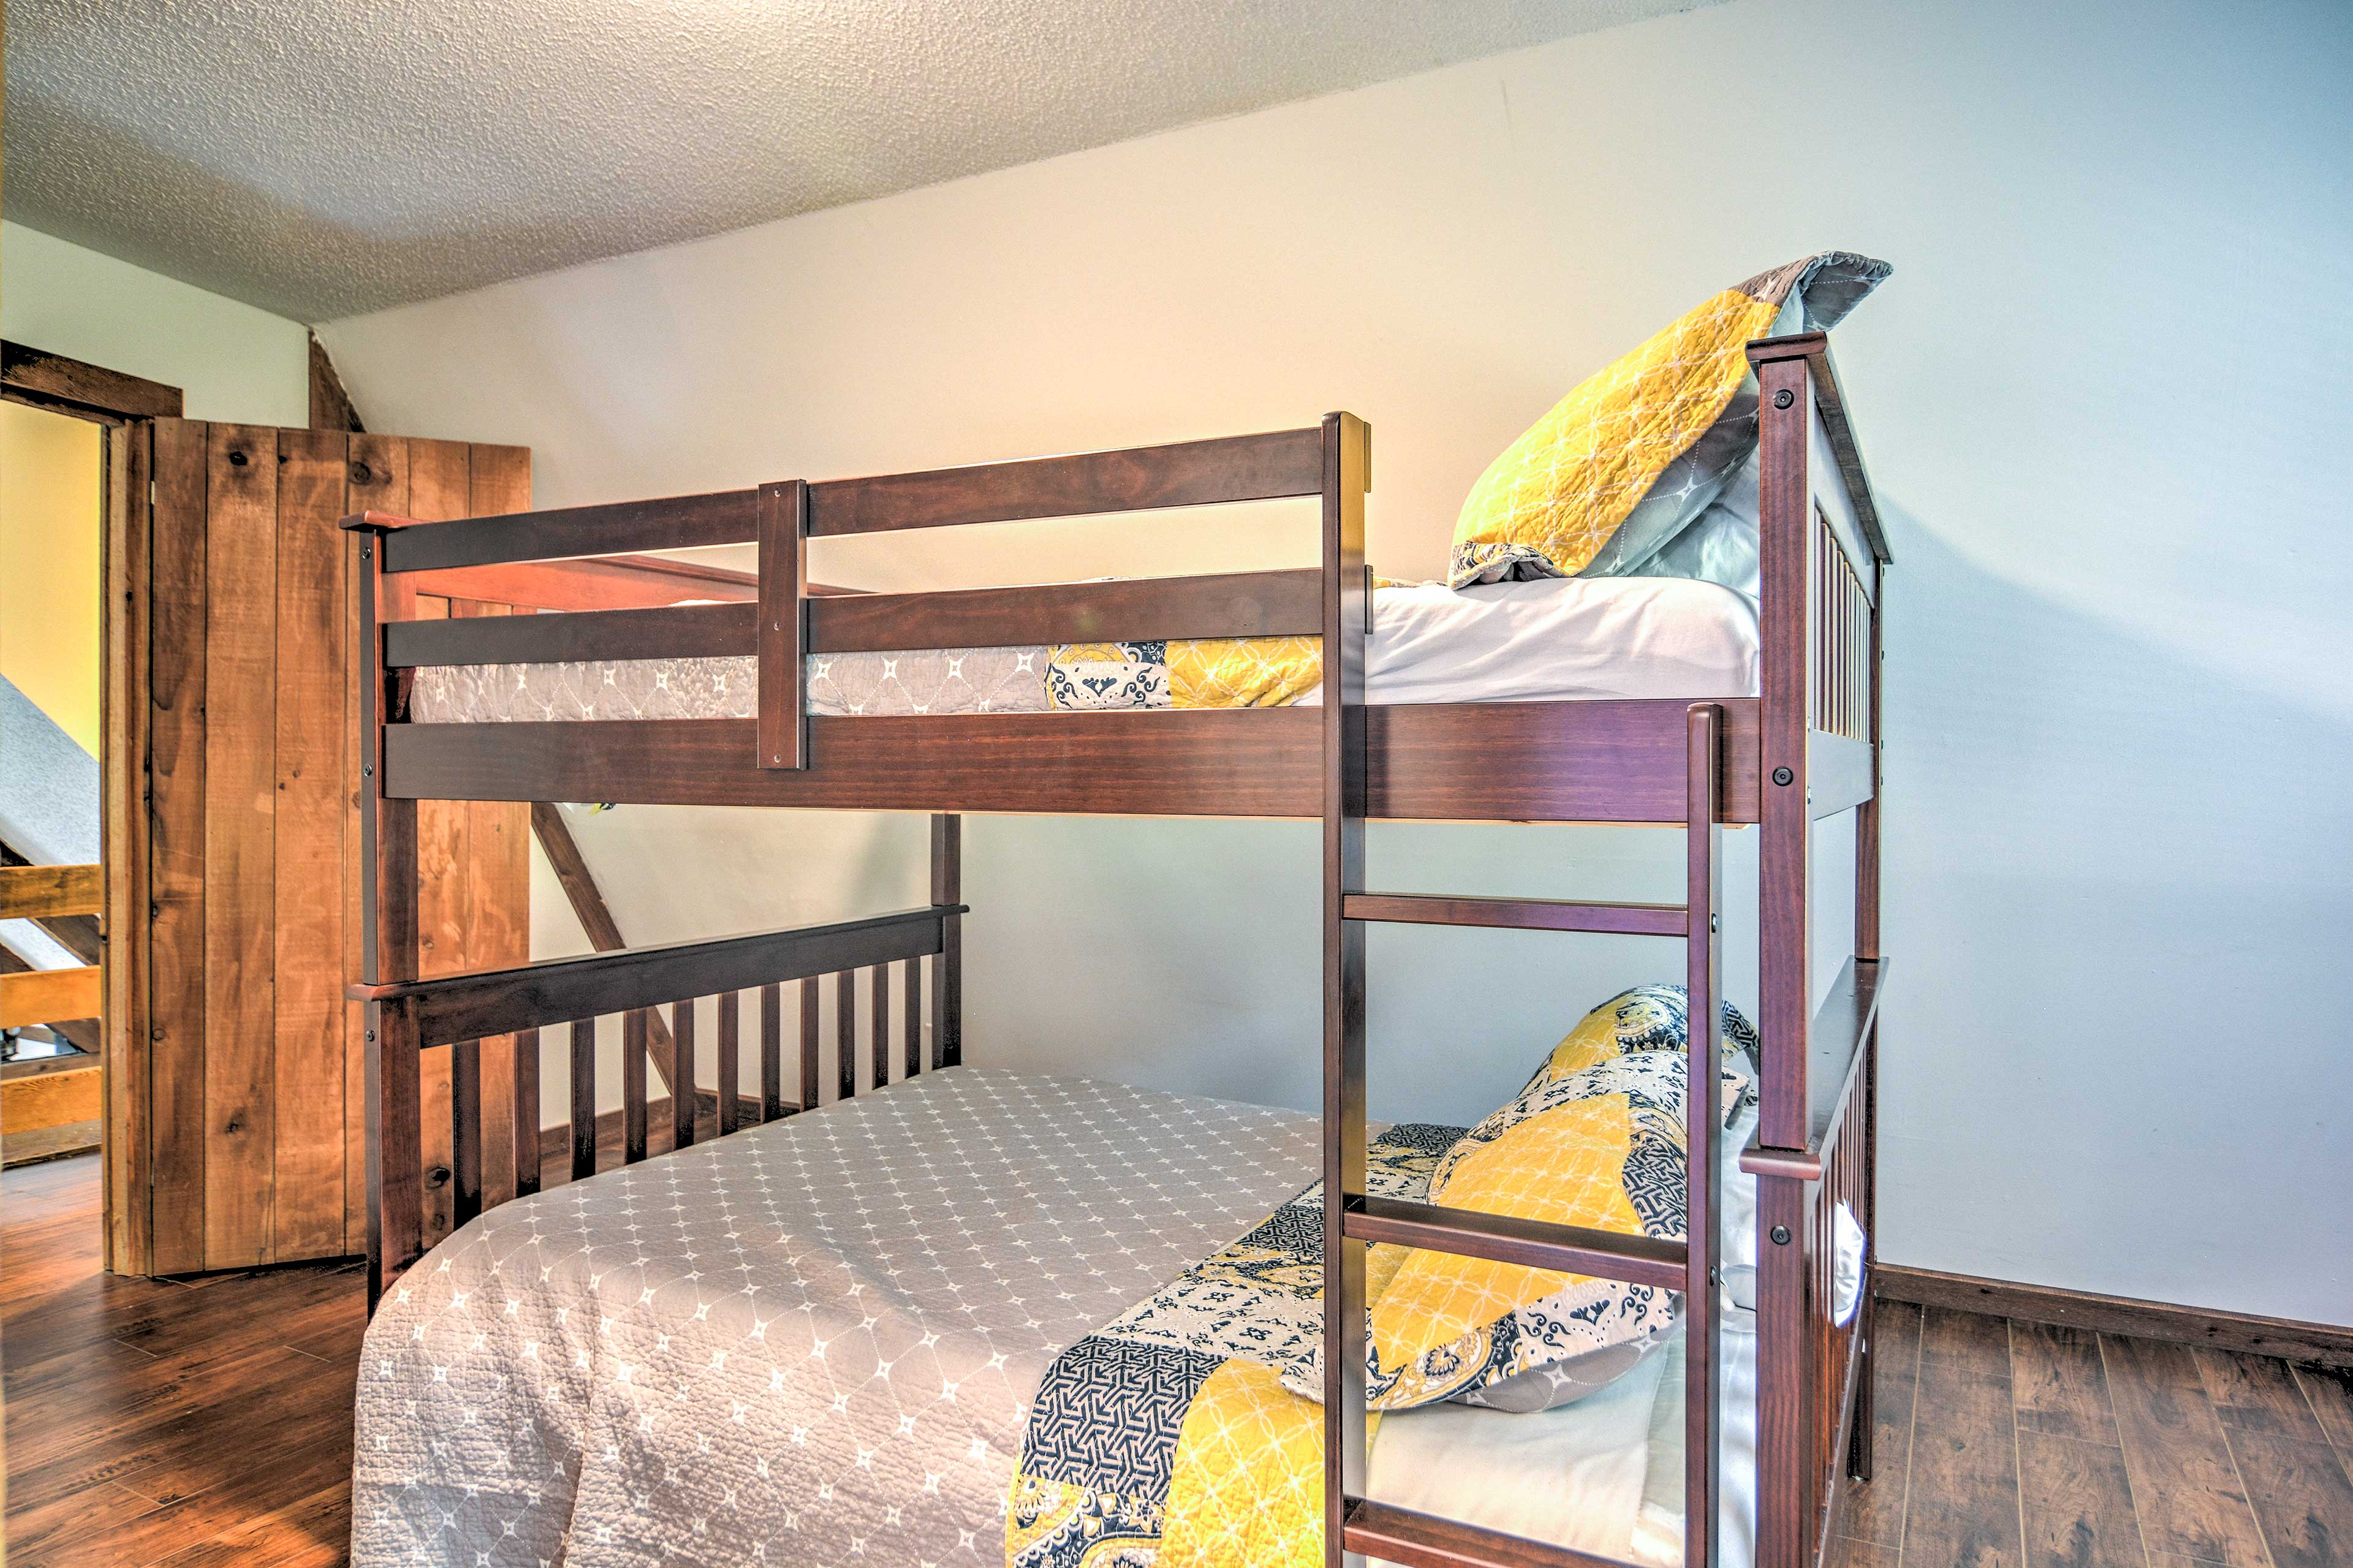 Children will enjoy the full-over-full bunk bed in the third bedroom.